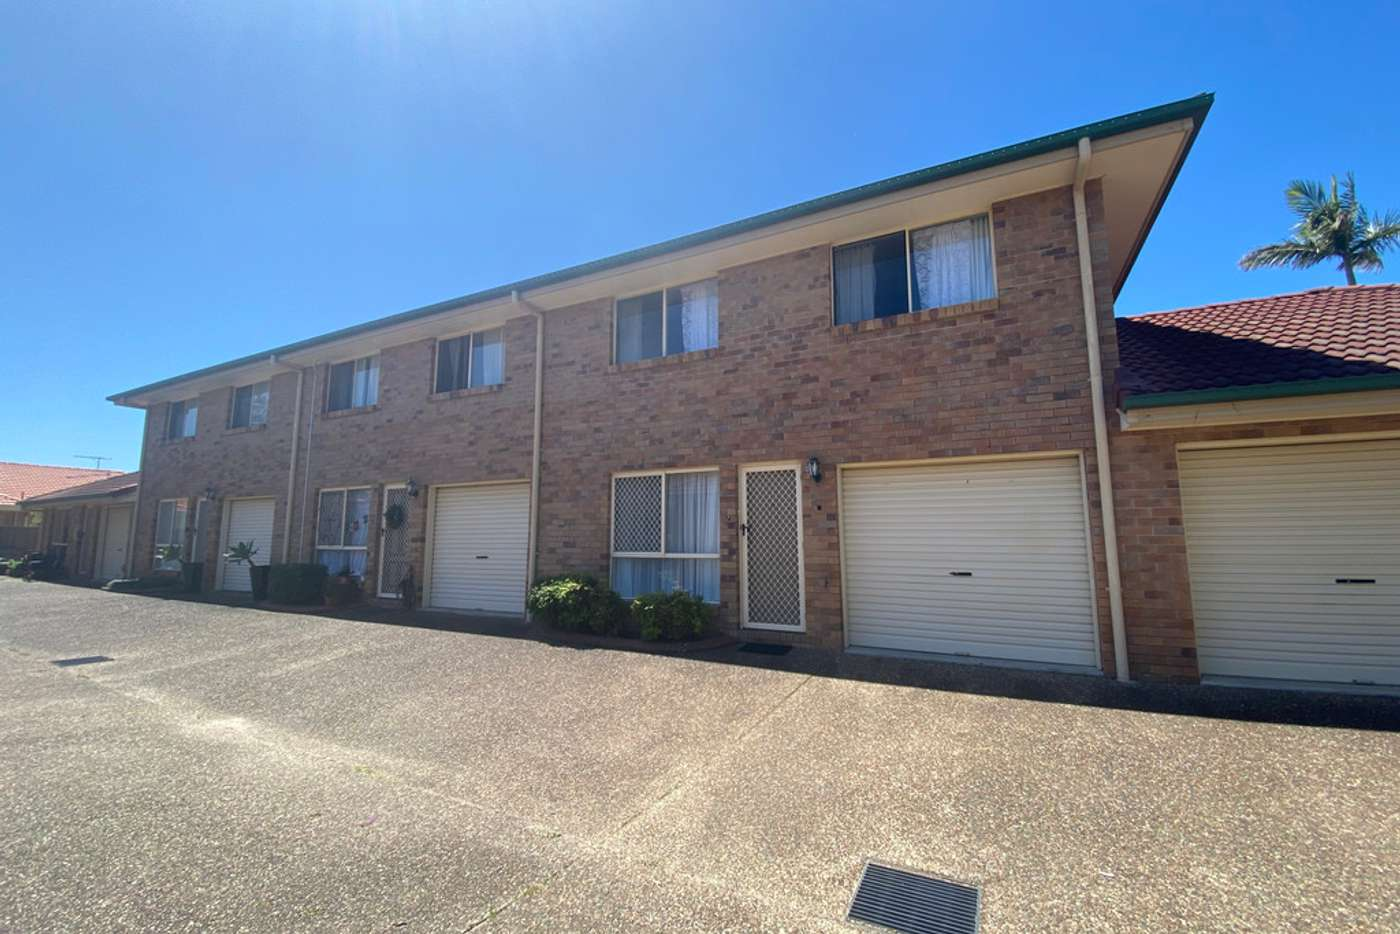 Main view of Homely townhouse listing, 7/54 Dalton Street, Kippa-ring QLD 4021